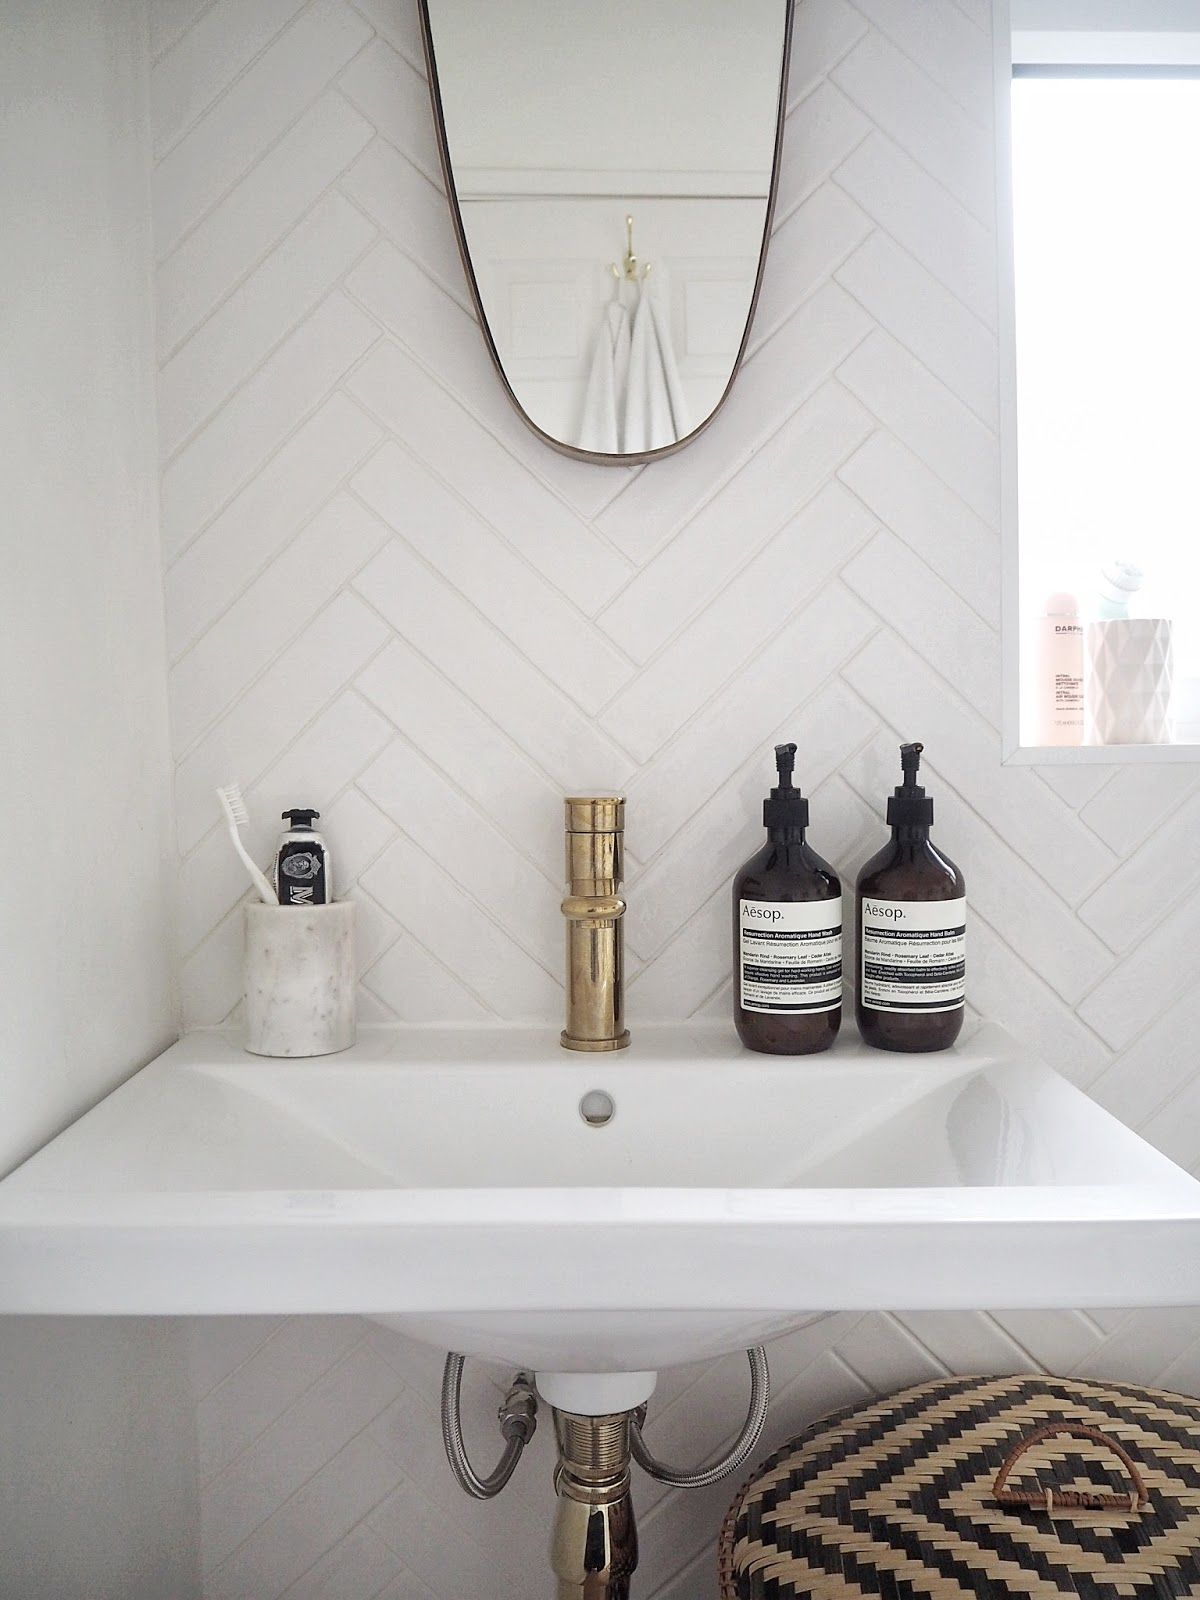 Bathroom Renovation Before And After A Fashion Fix Uk Fashion And Lifestyle Blog Bathroom Renovation Bathroom Renovation Cost Diy Bathroom Remodel